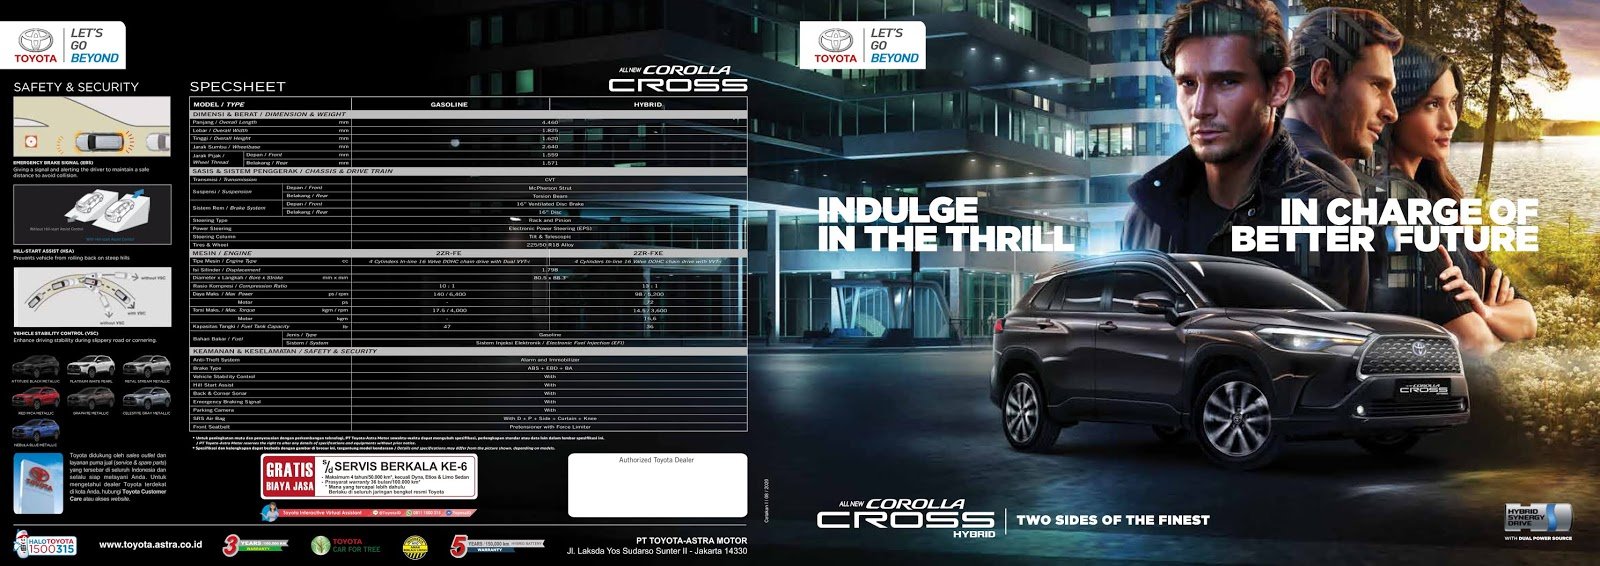 All New Corolla Cross - Info Promo & Harga Toyota Corolla Cross Bali 2020